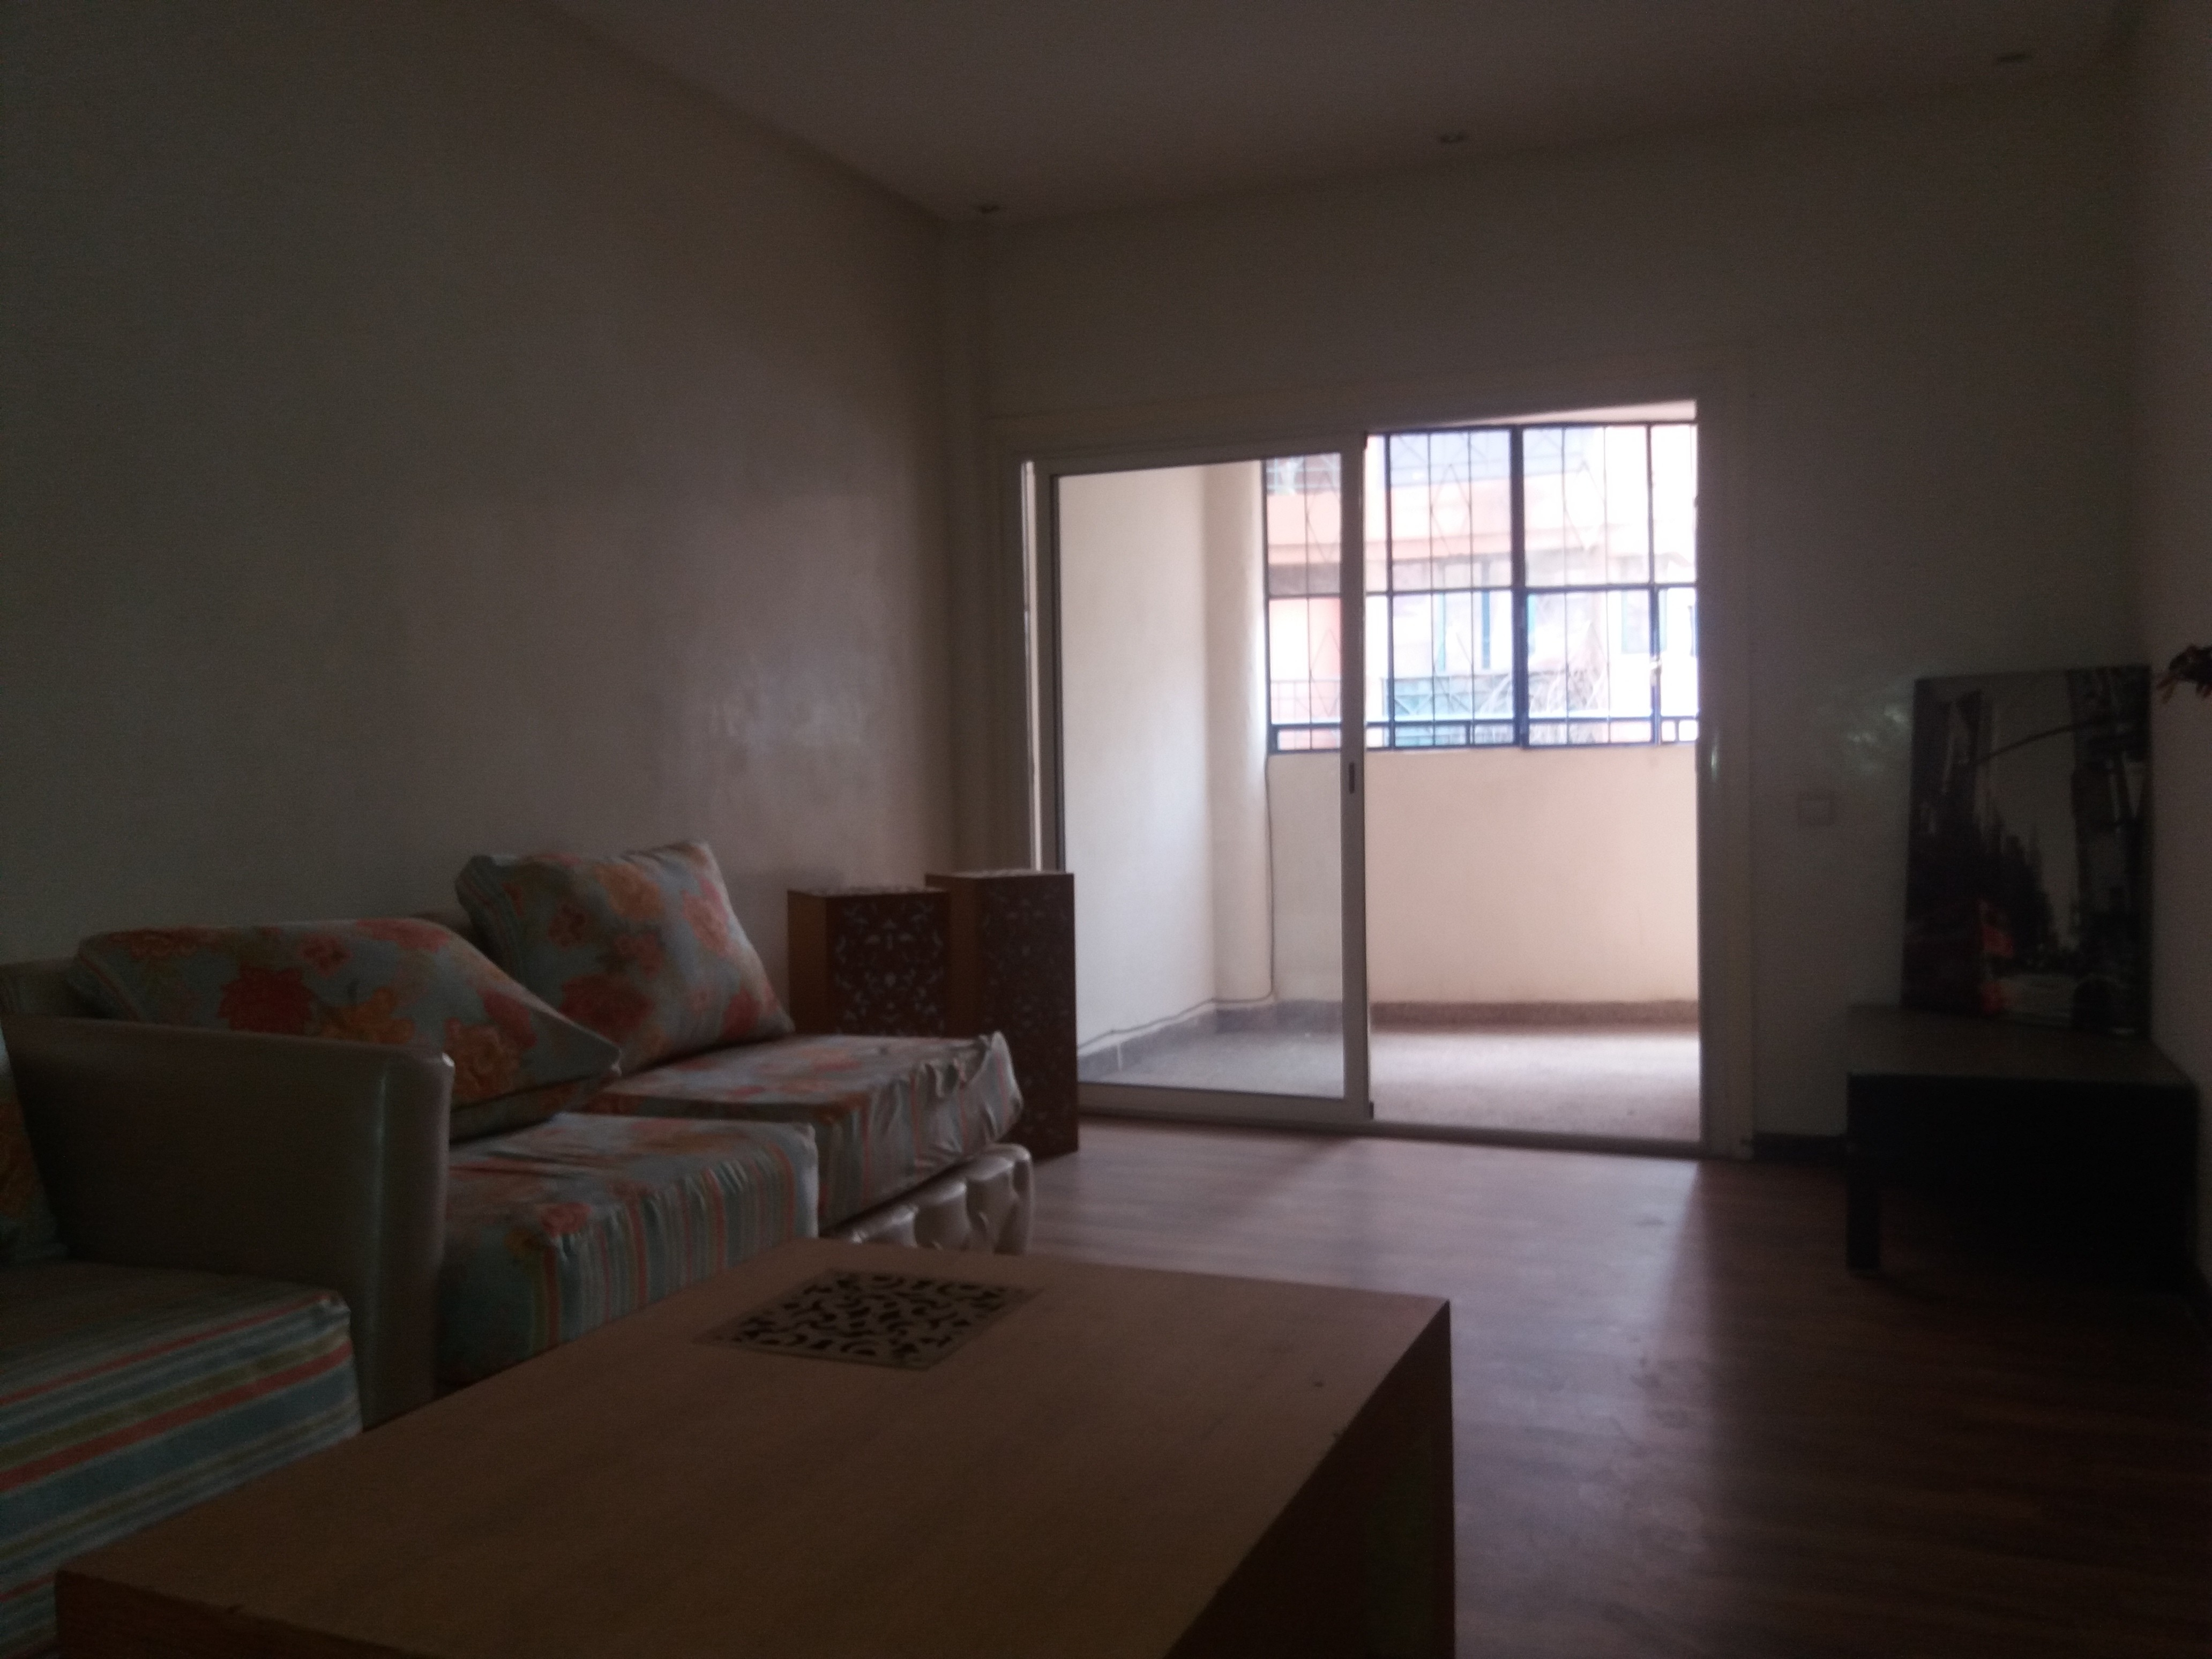 Location <strong>Appartement</strong> Marrakech Allal El Fassi <strong>96 m2</strong>